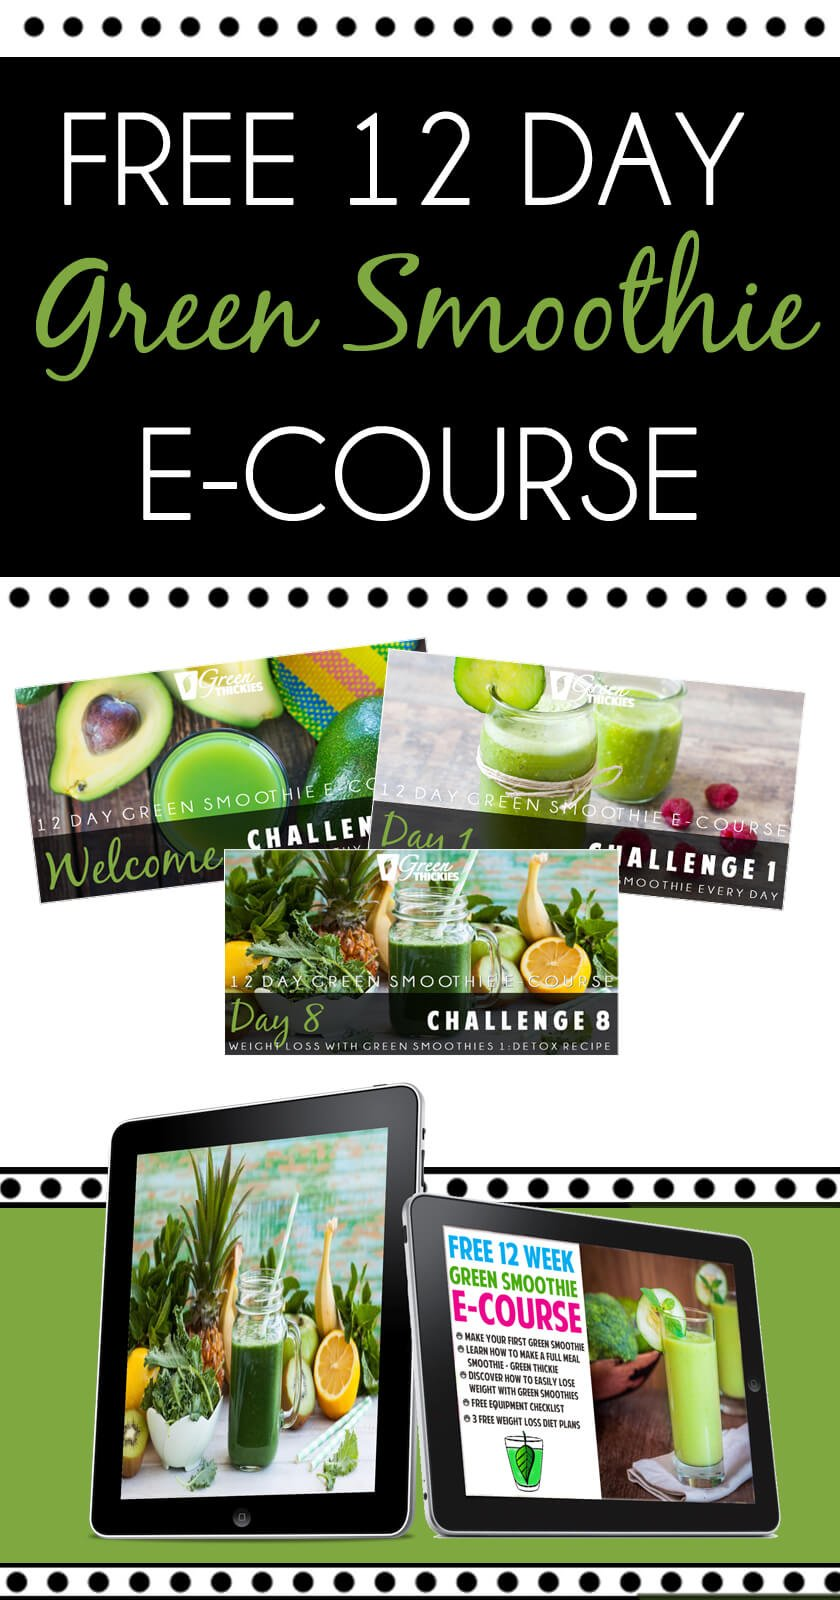 FREE 12 Day Green Smoothie E-Course - Green Thickies ...